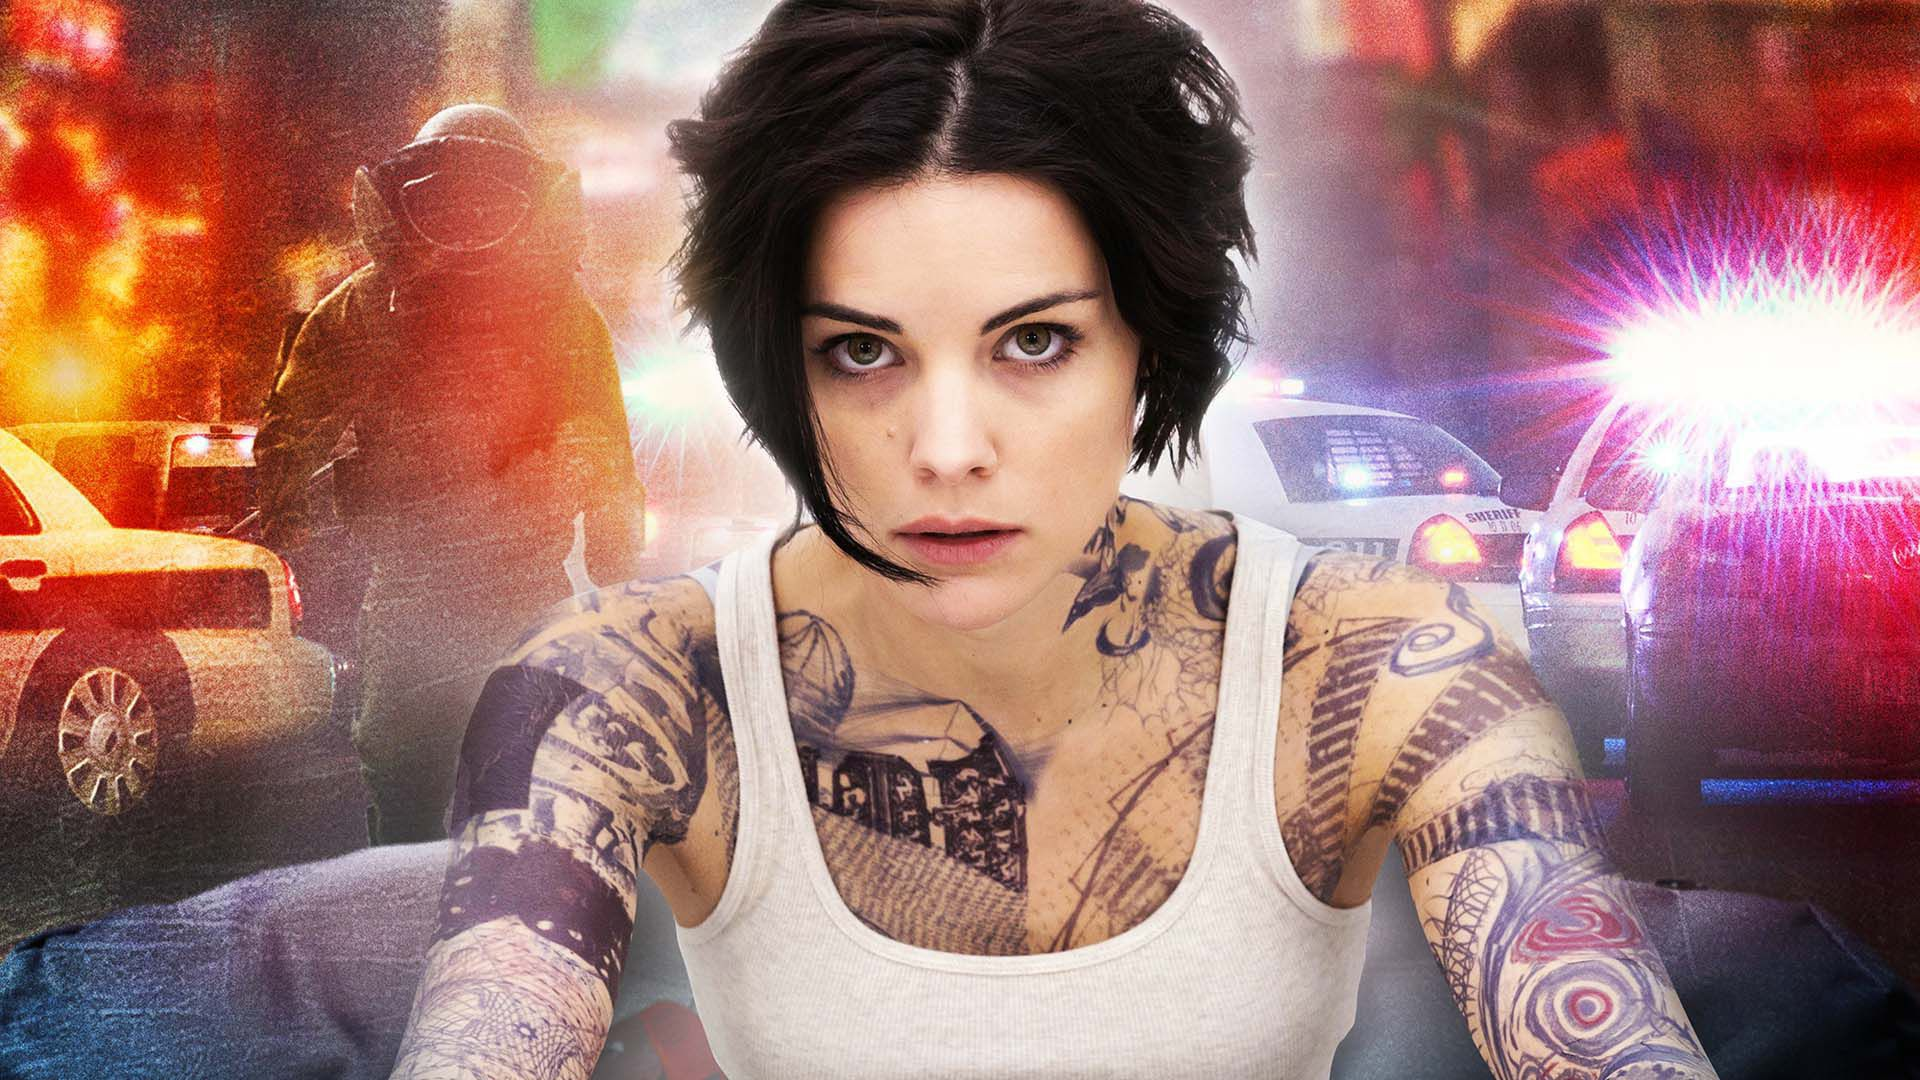 Only Hd Wallpapers Girl Jaimie Alexander Wallpapers Backgrounds